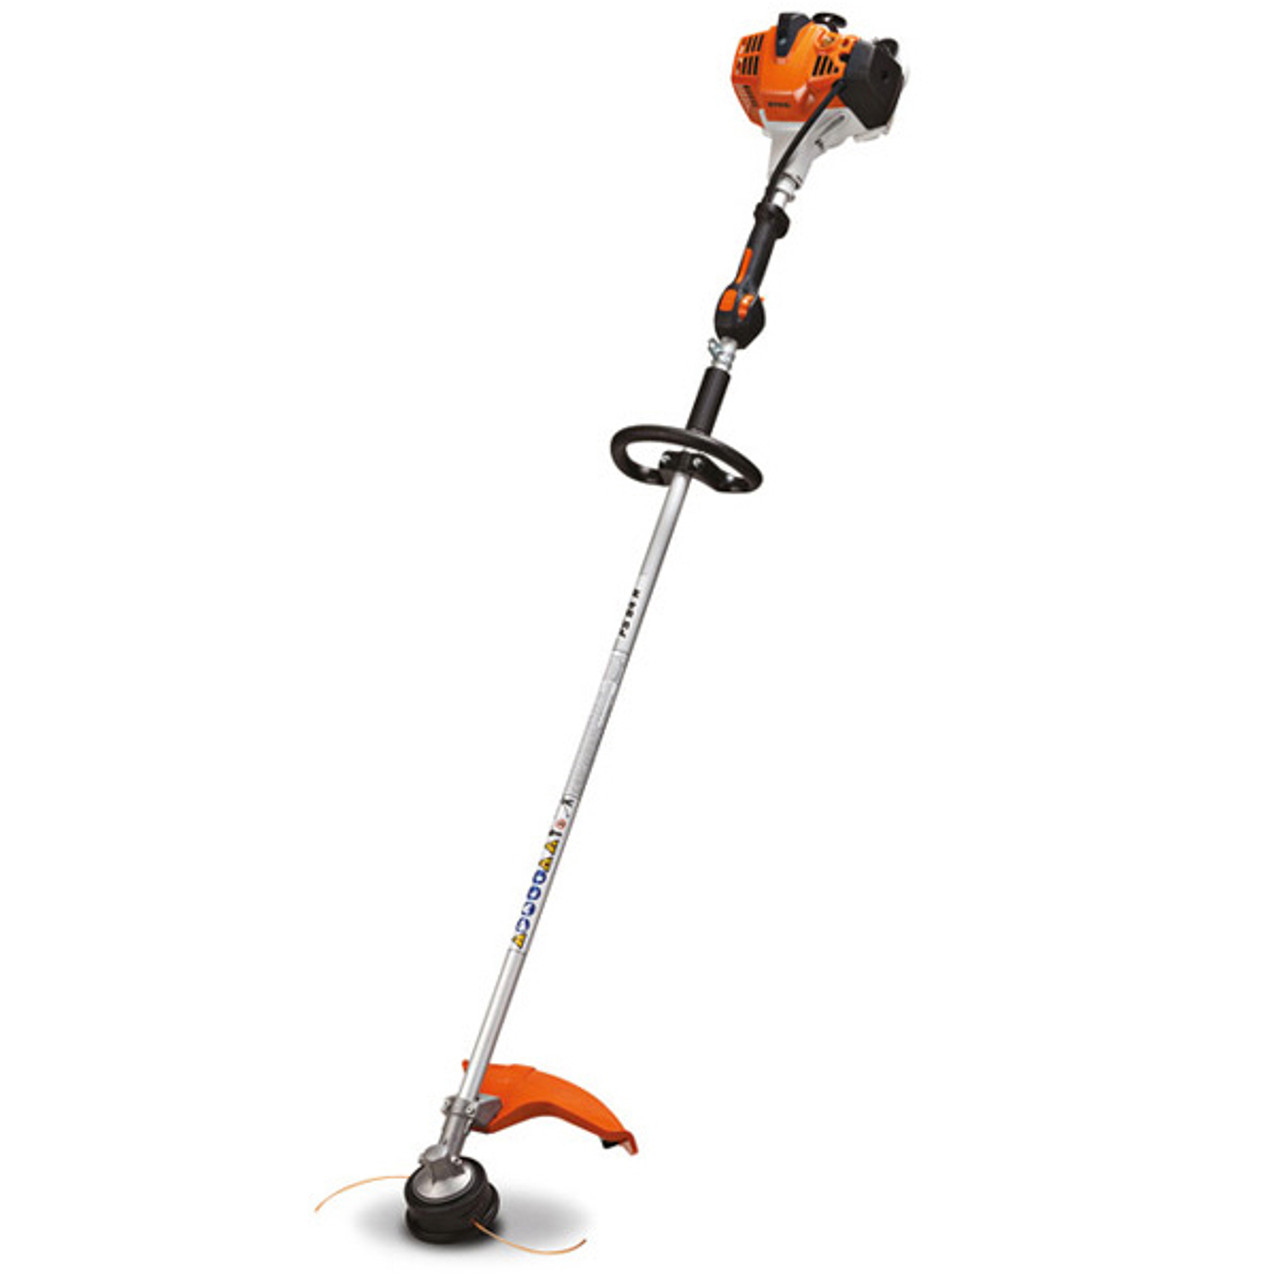 STIHL FS 94 R 24.1cc Commercial String Trimmer w/ Eco Speed Image